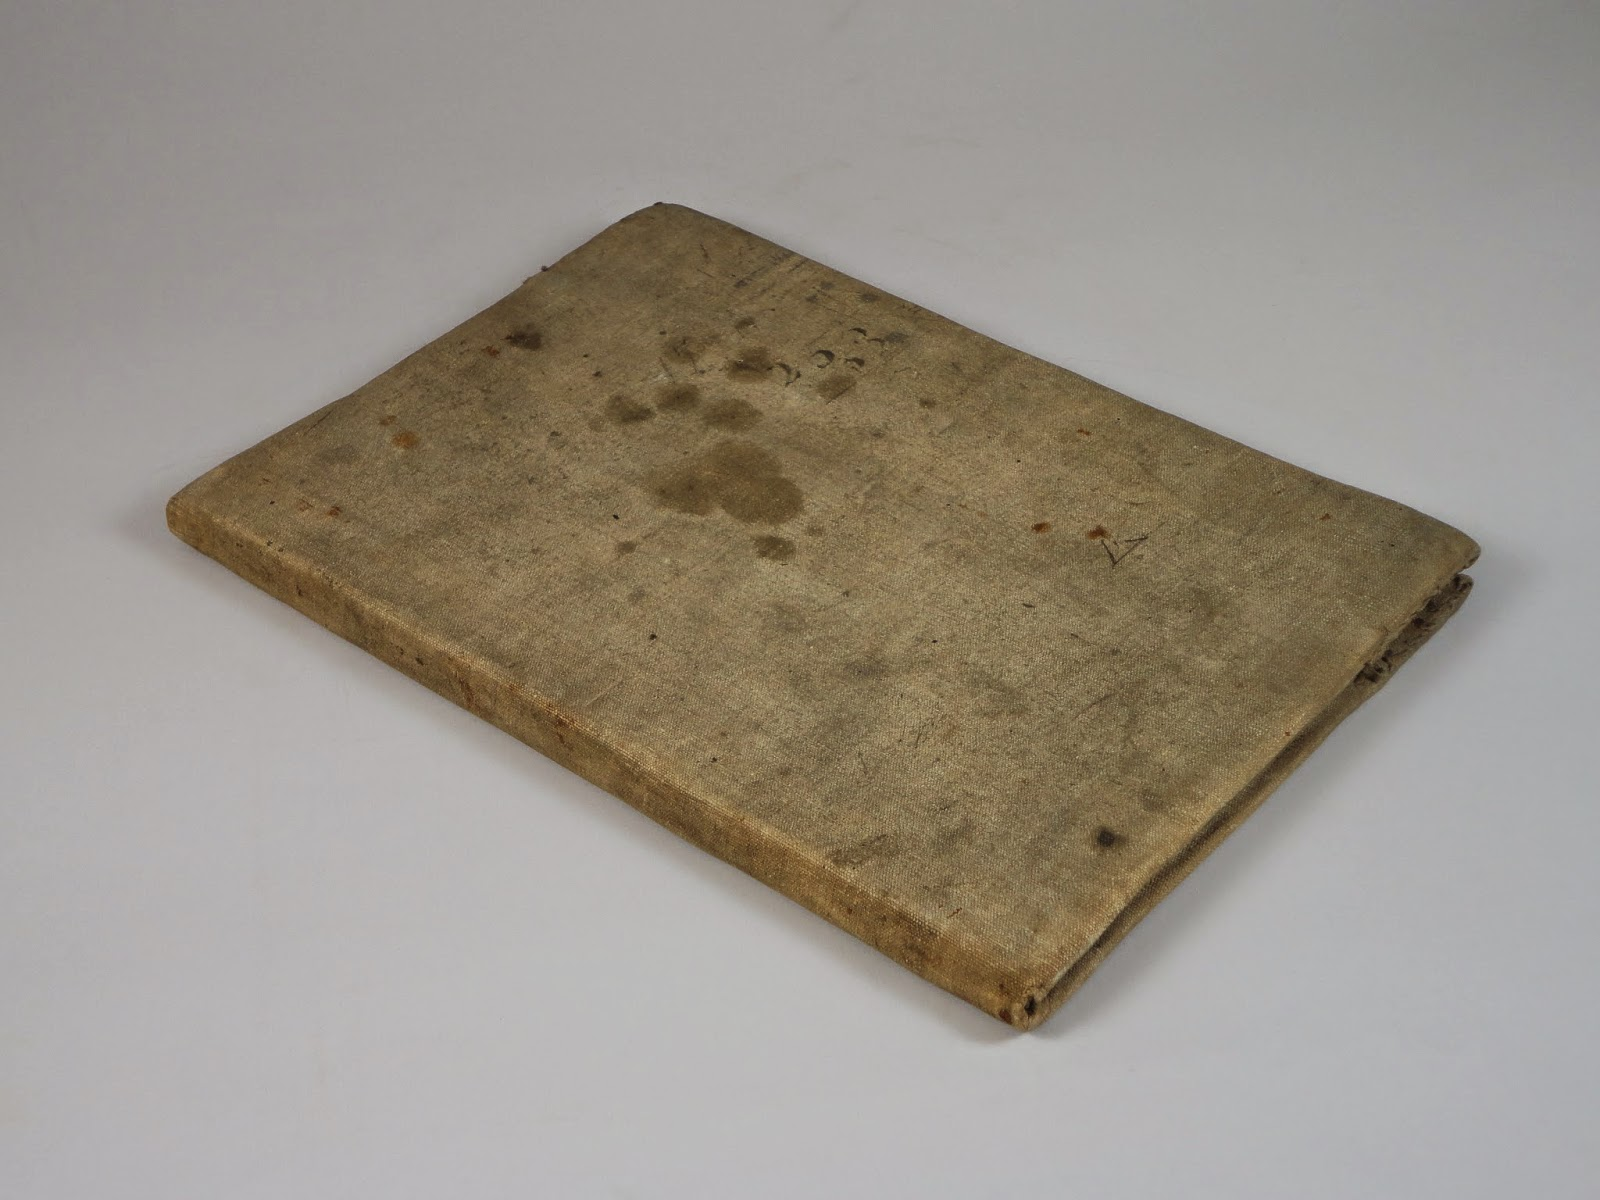 A slim, cloth-covered volume with heavy staining.